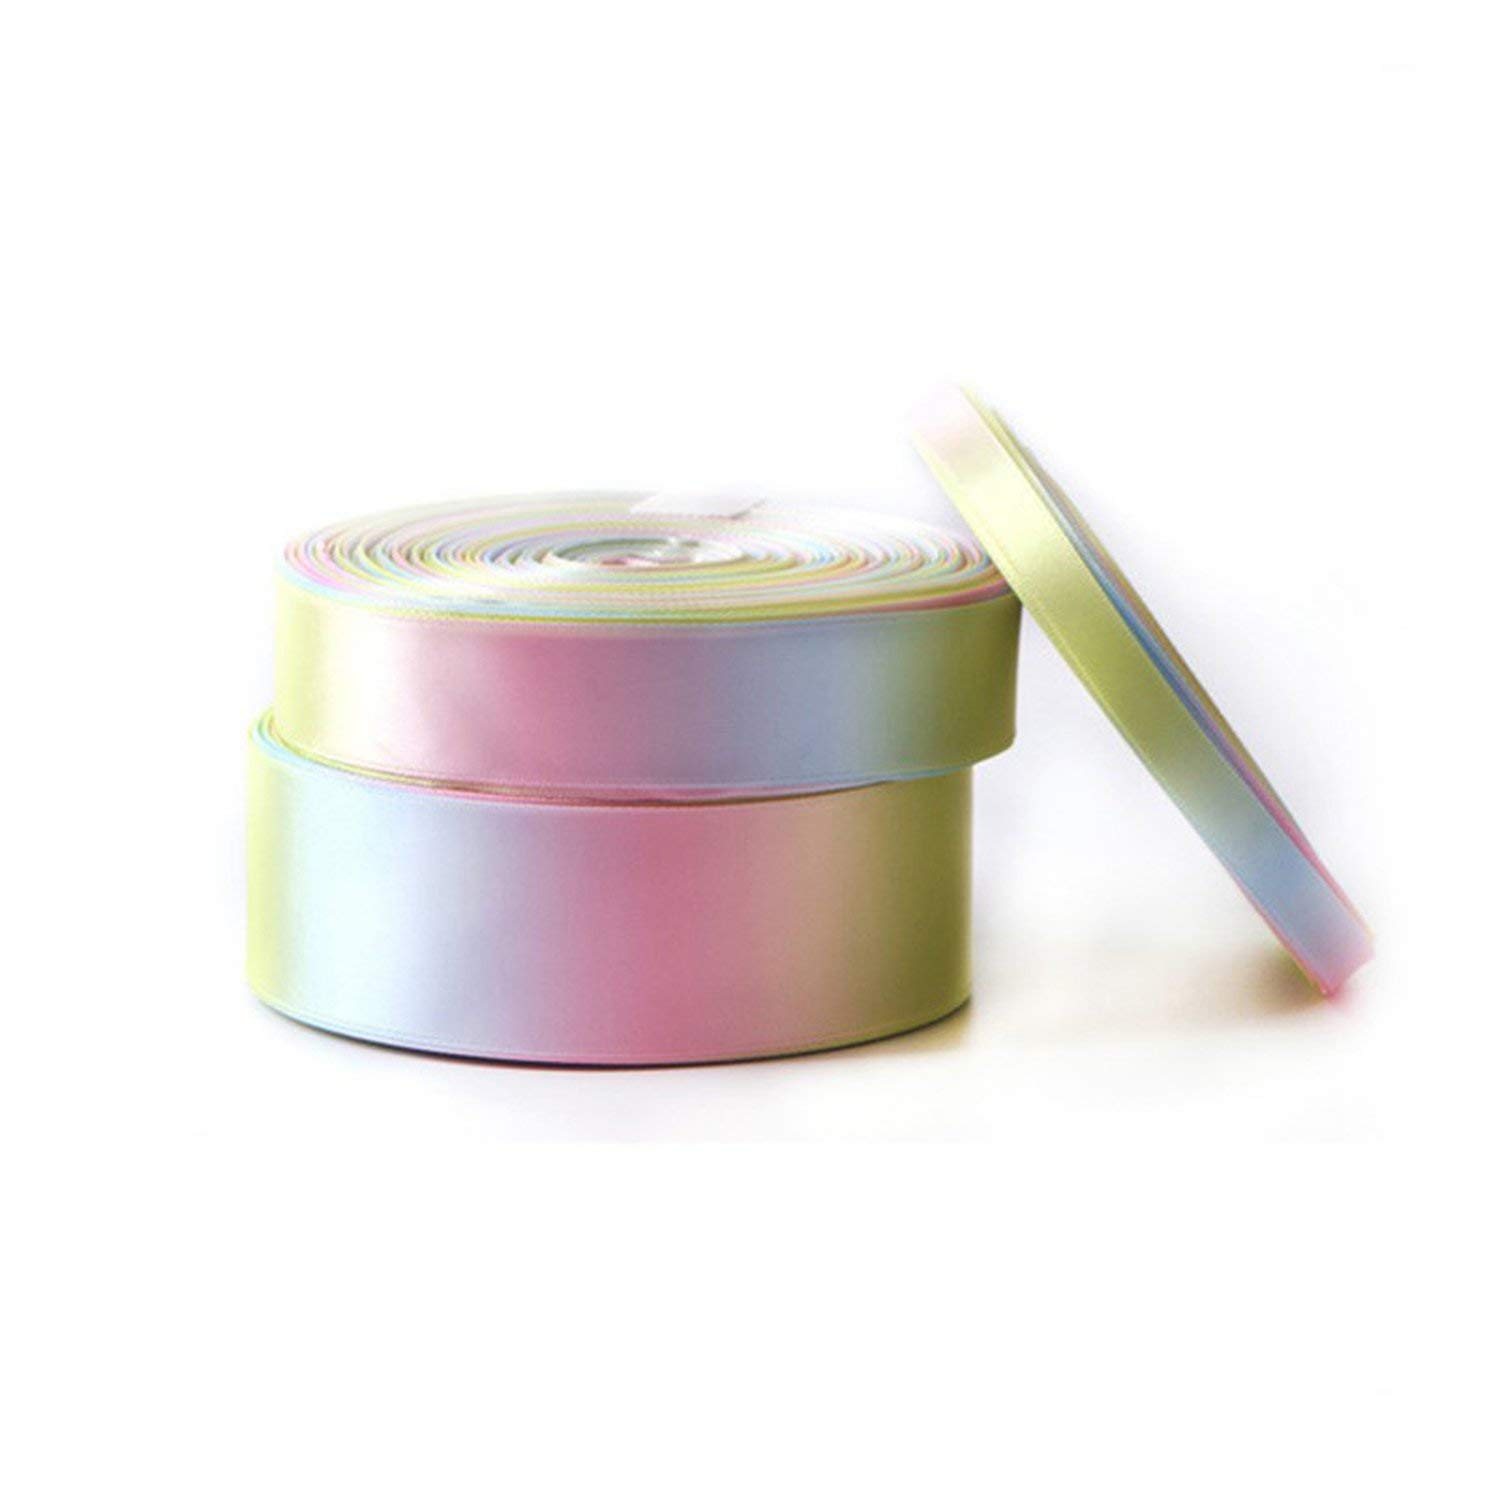 Party Streamers Rainbow Ribbon Printed Polyester Satin Ribbons Handmade Materials,50mm by AYO-LE streamers (Image #5)